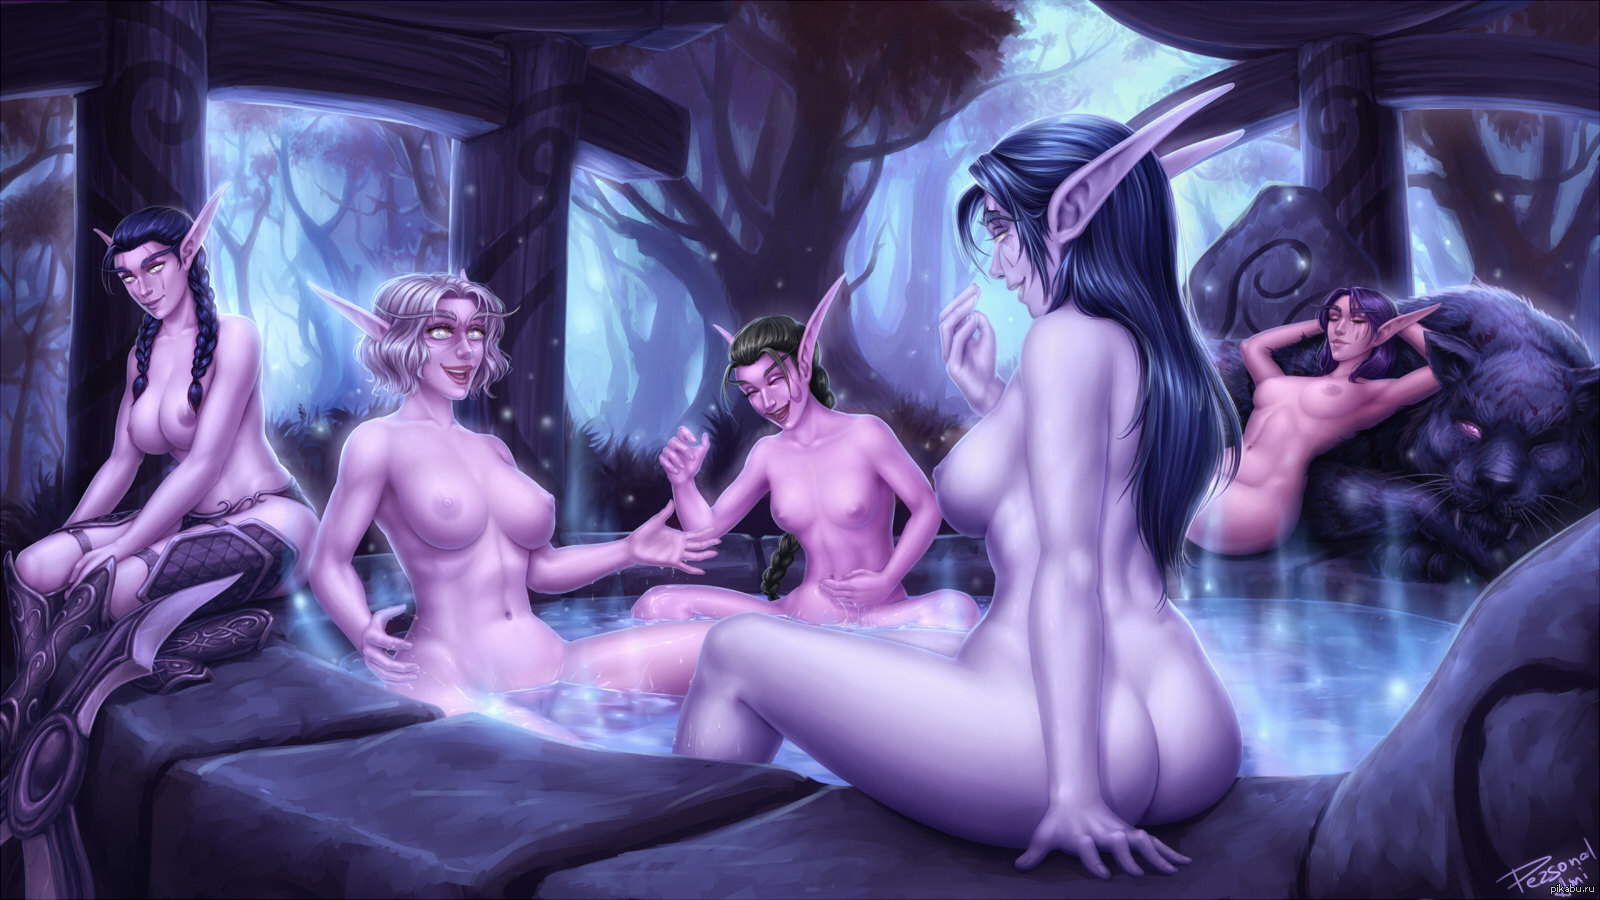 Night elf xxx game nackt movie